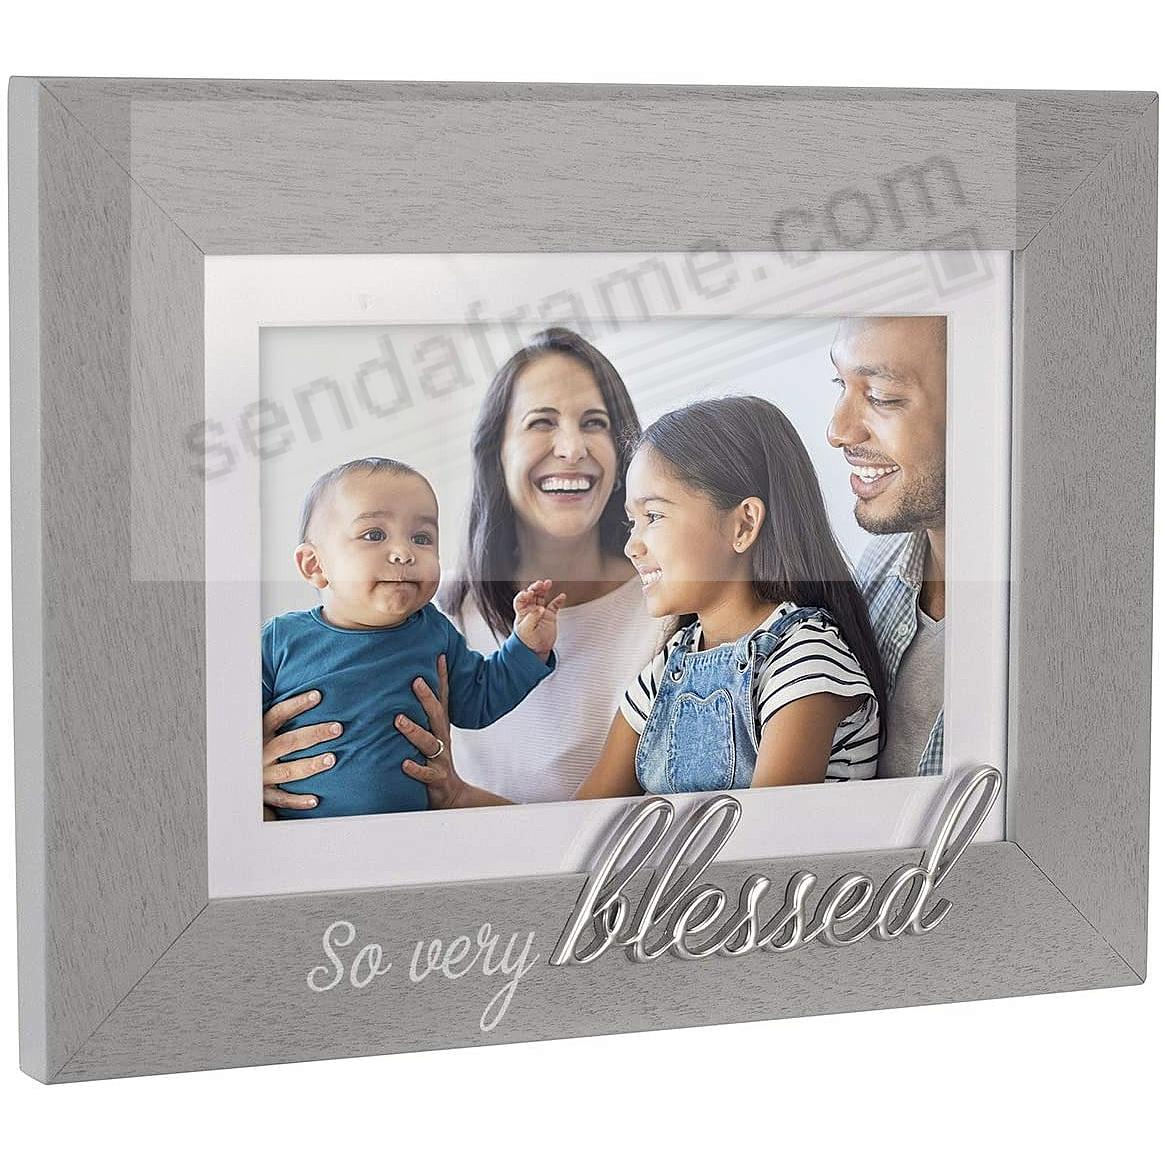 SO VERY BLESSED 5x7/4x6 frame by Malden®